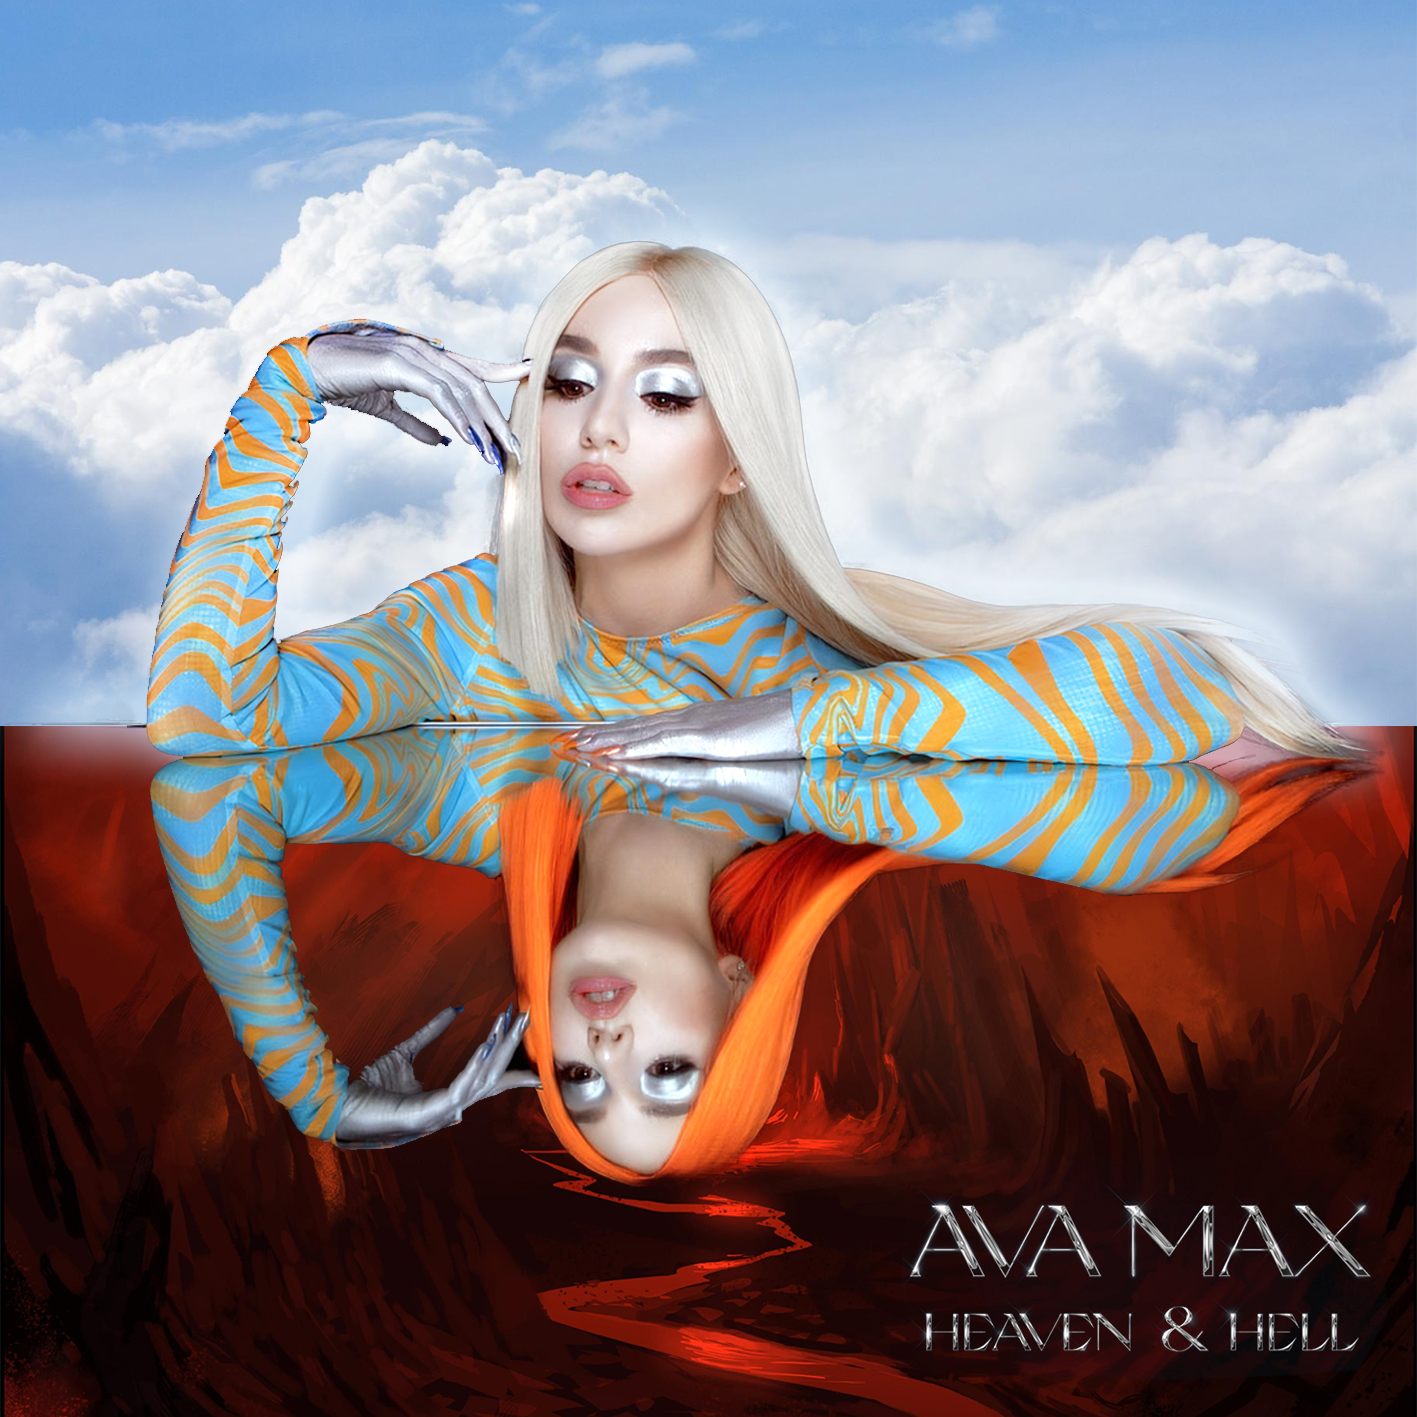 ava-max-heaven-hell-moonchild-final-alte